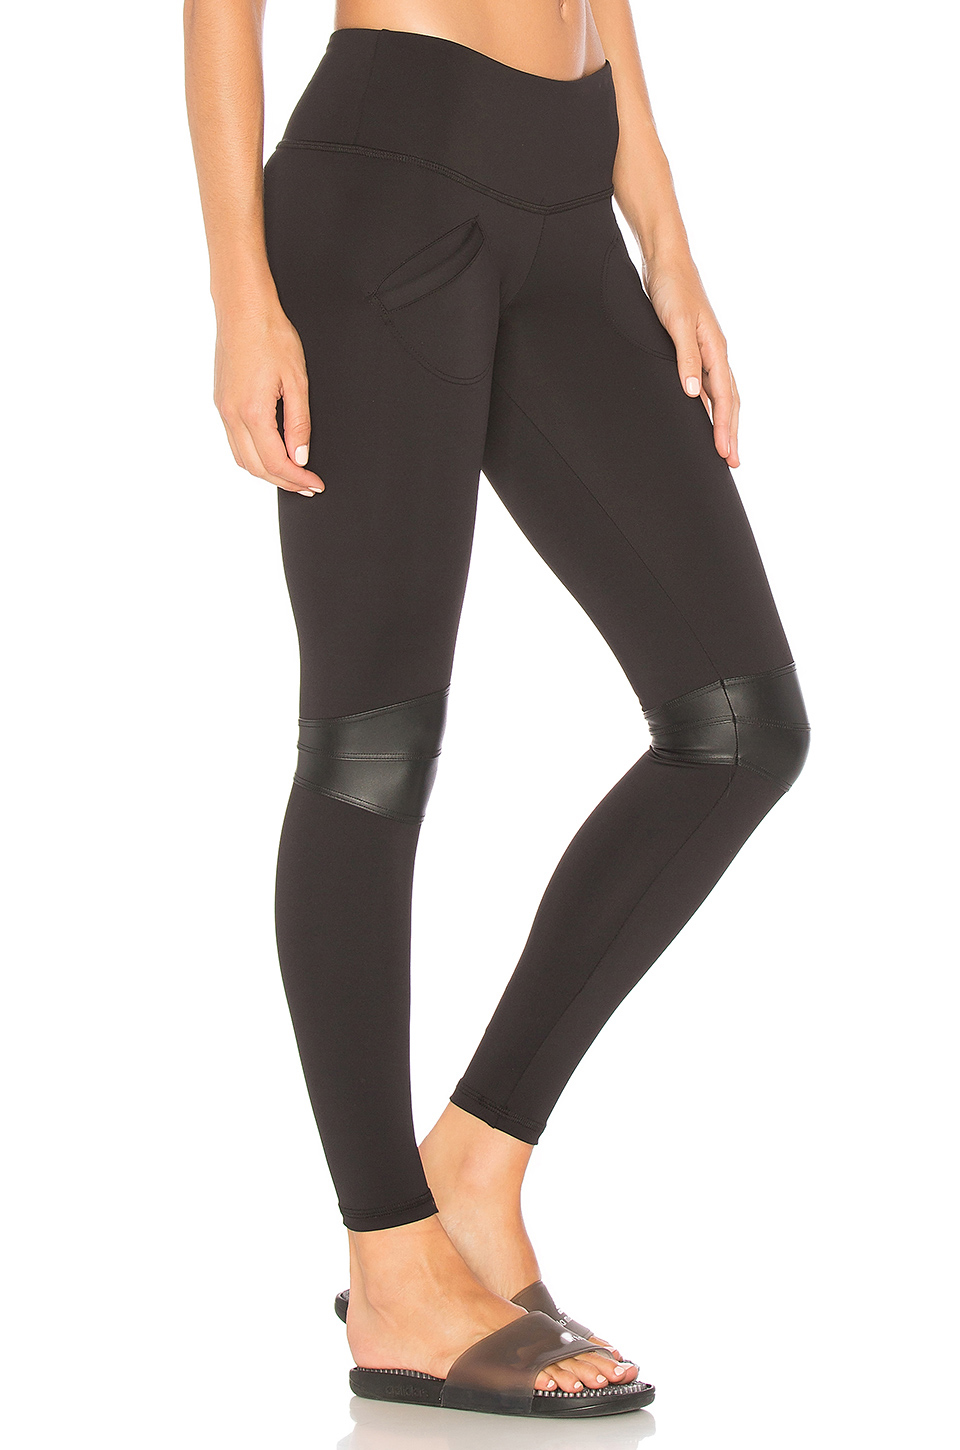 Wholesale Tights Manufacturers Wholesale Design Your Own Women Fitness Yoga Clothing Manufacturing Workout Athletic Yoga Leggings Sports With Custom Logo Buy Fitness